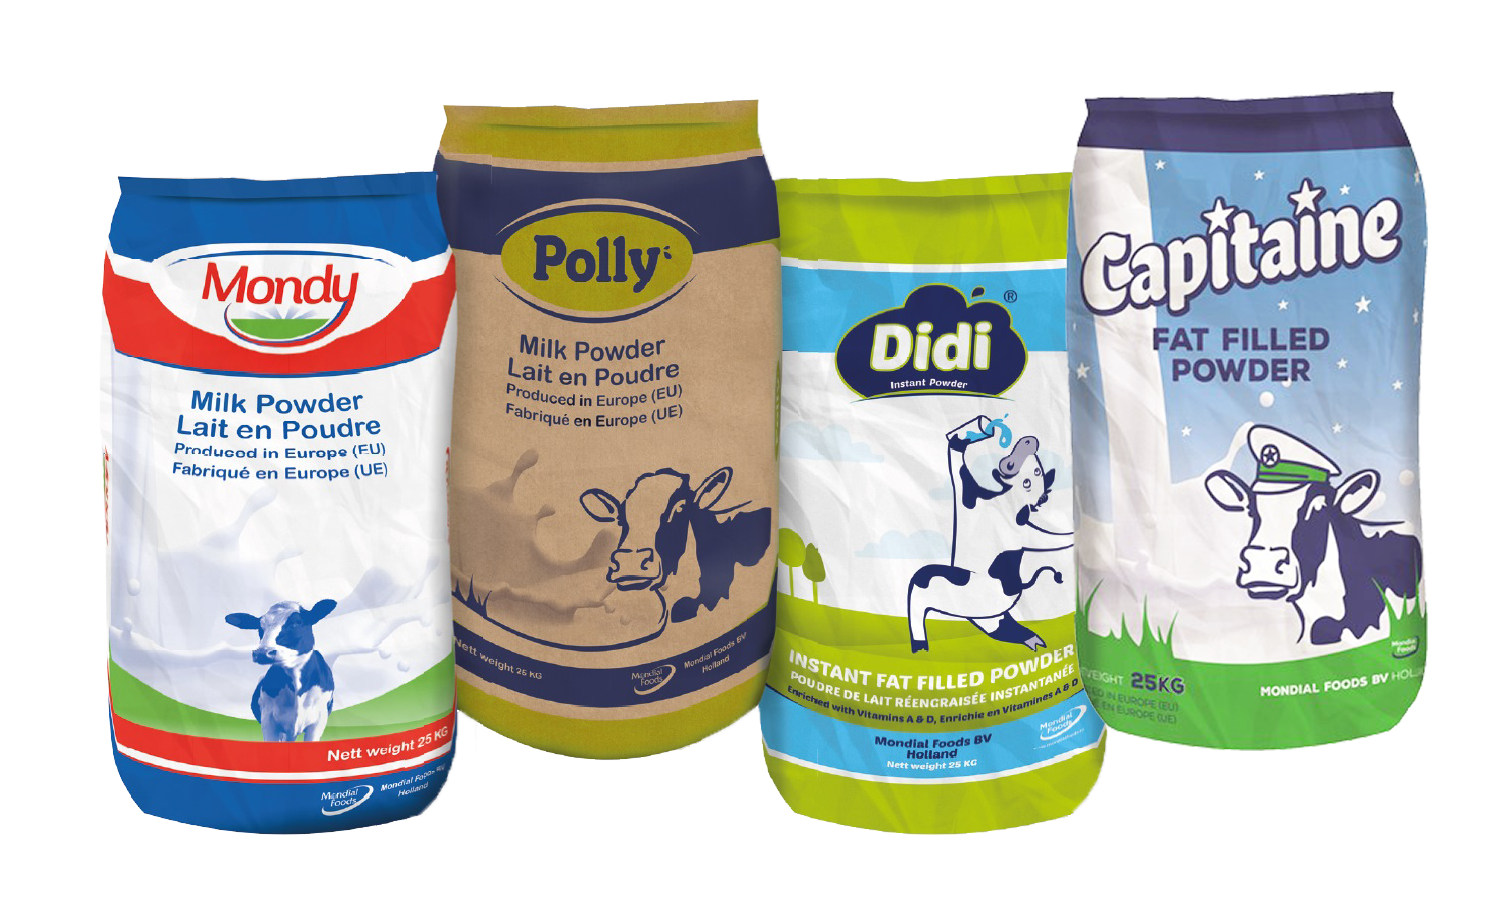 Dairy products from Europe